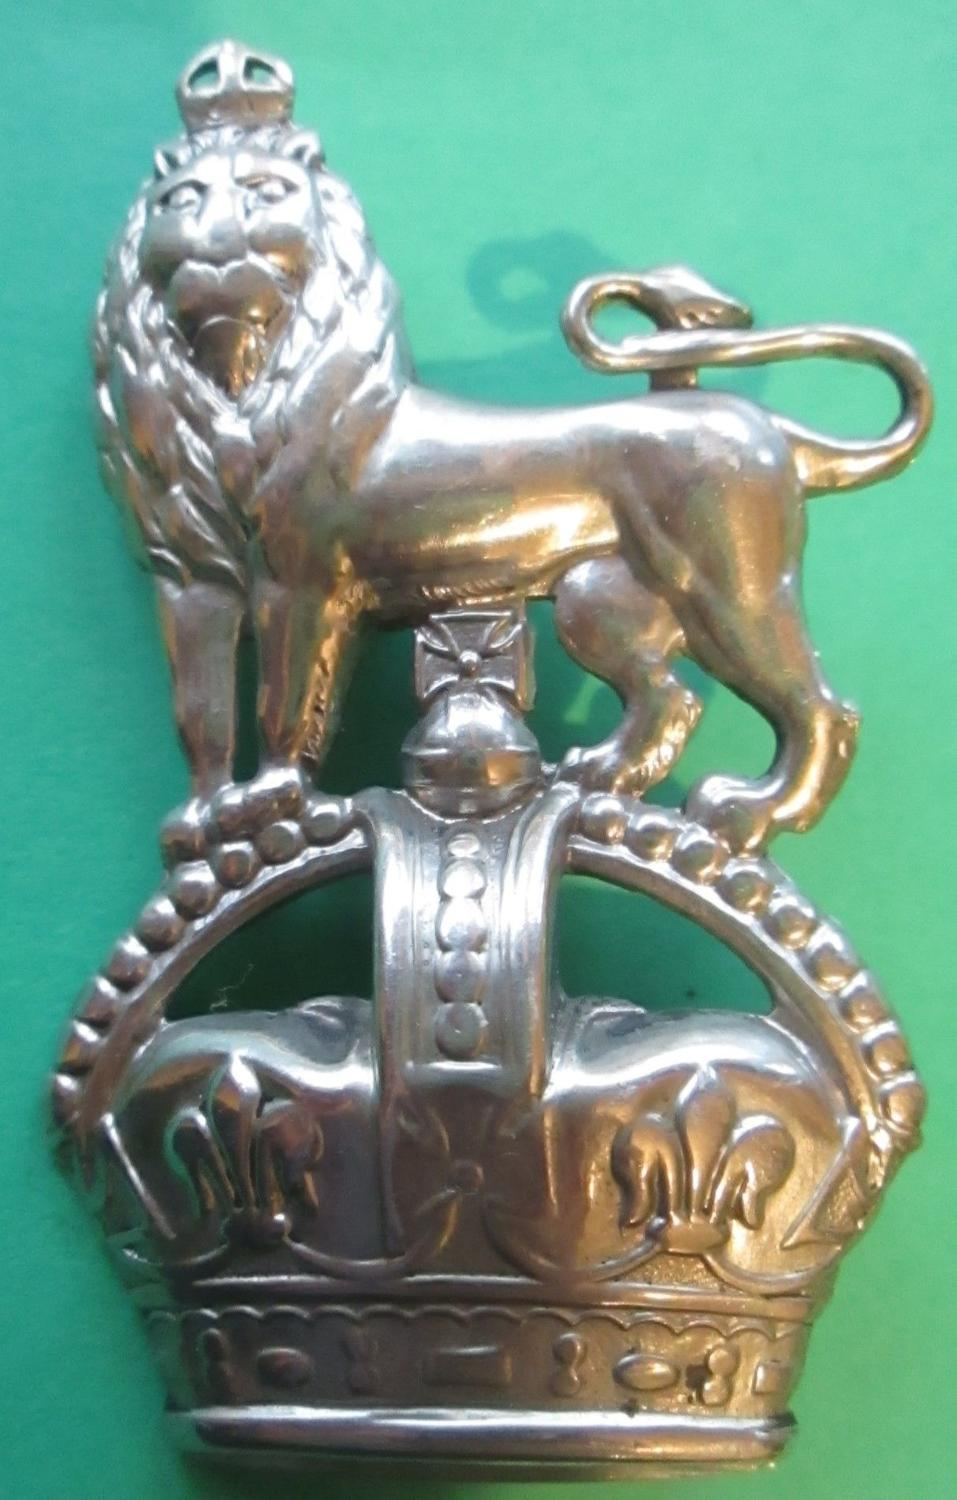 A 15th HUSSARS KINGS CROWN ARM BADGE